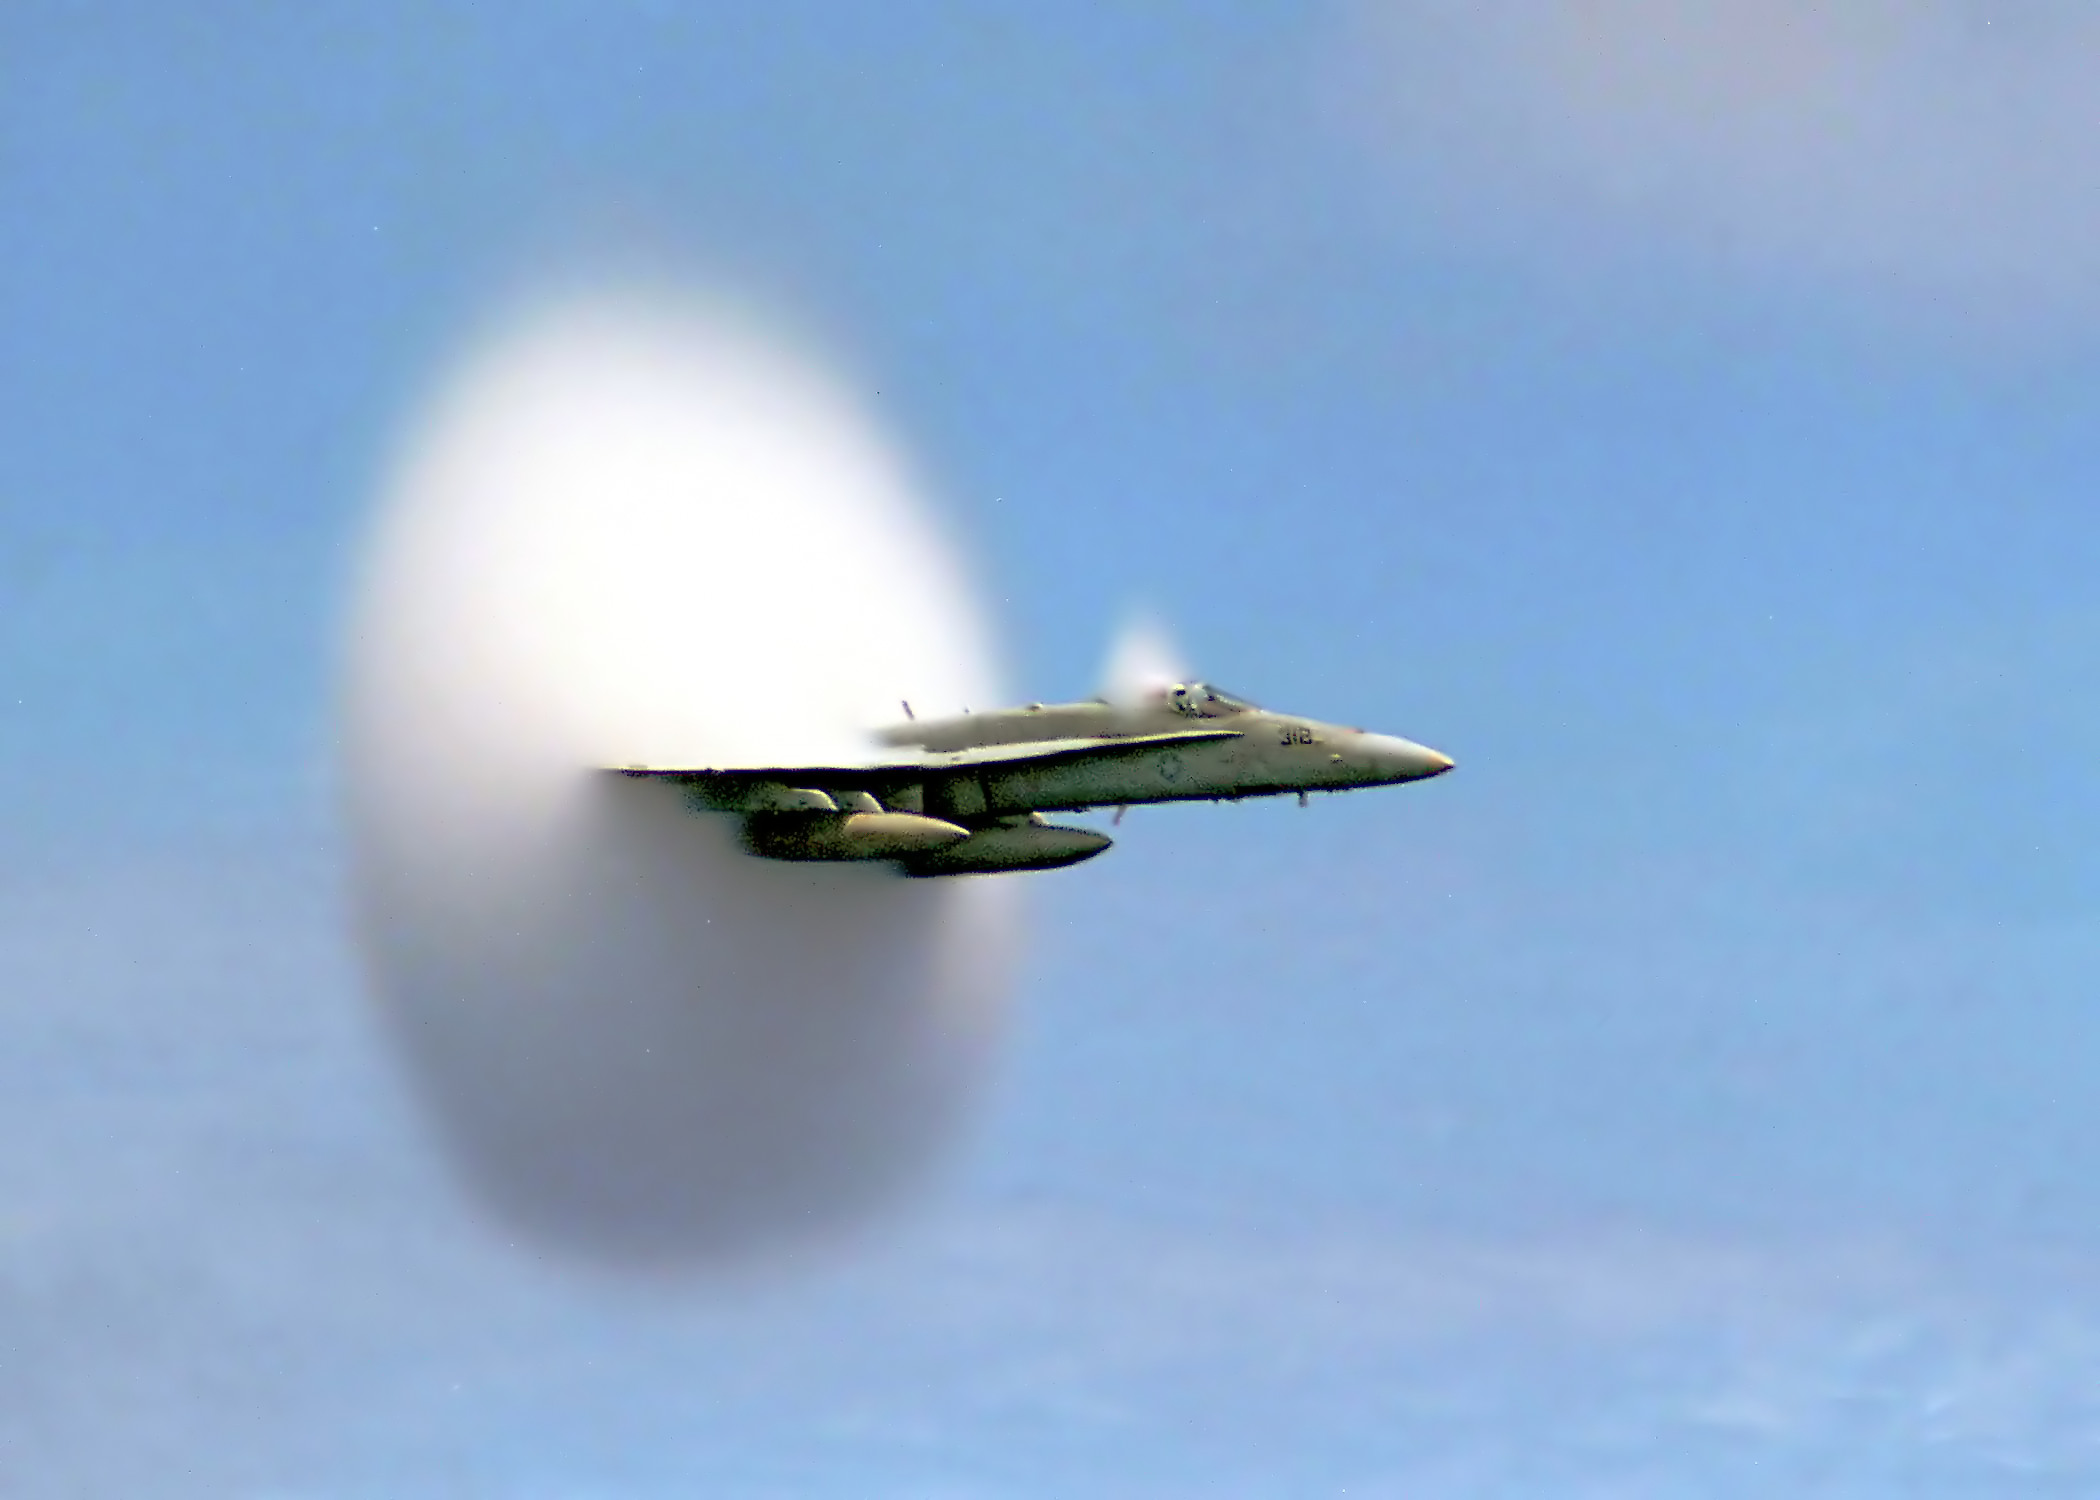 U.S. Navy F/A-18 breaking the sound barrier. The white halo is formed by condensed water droplets thought to result from a drop in air pressure around the aircraft (see Prandtl-Glauert Singularity).